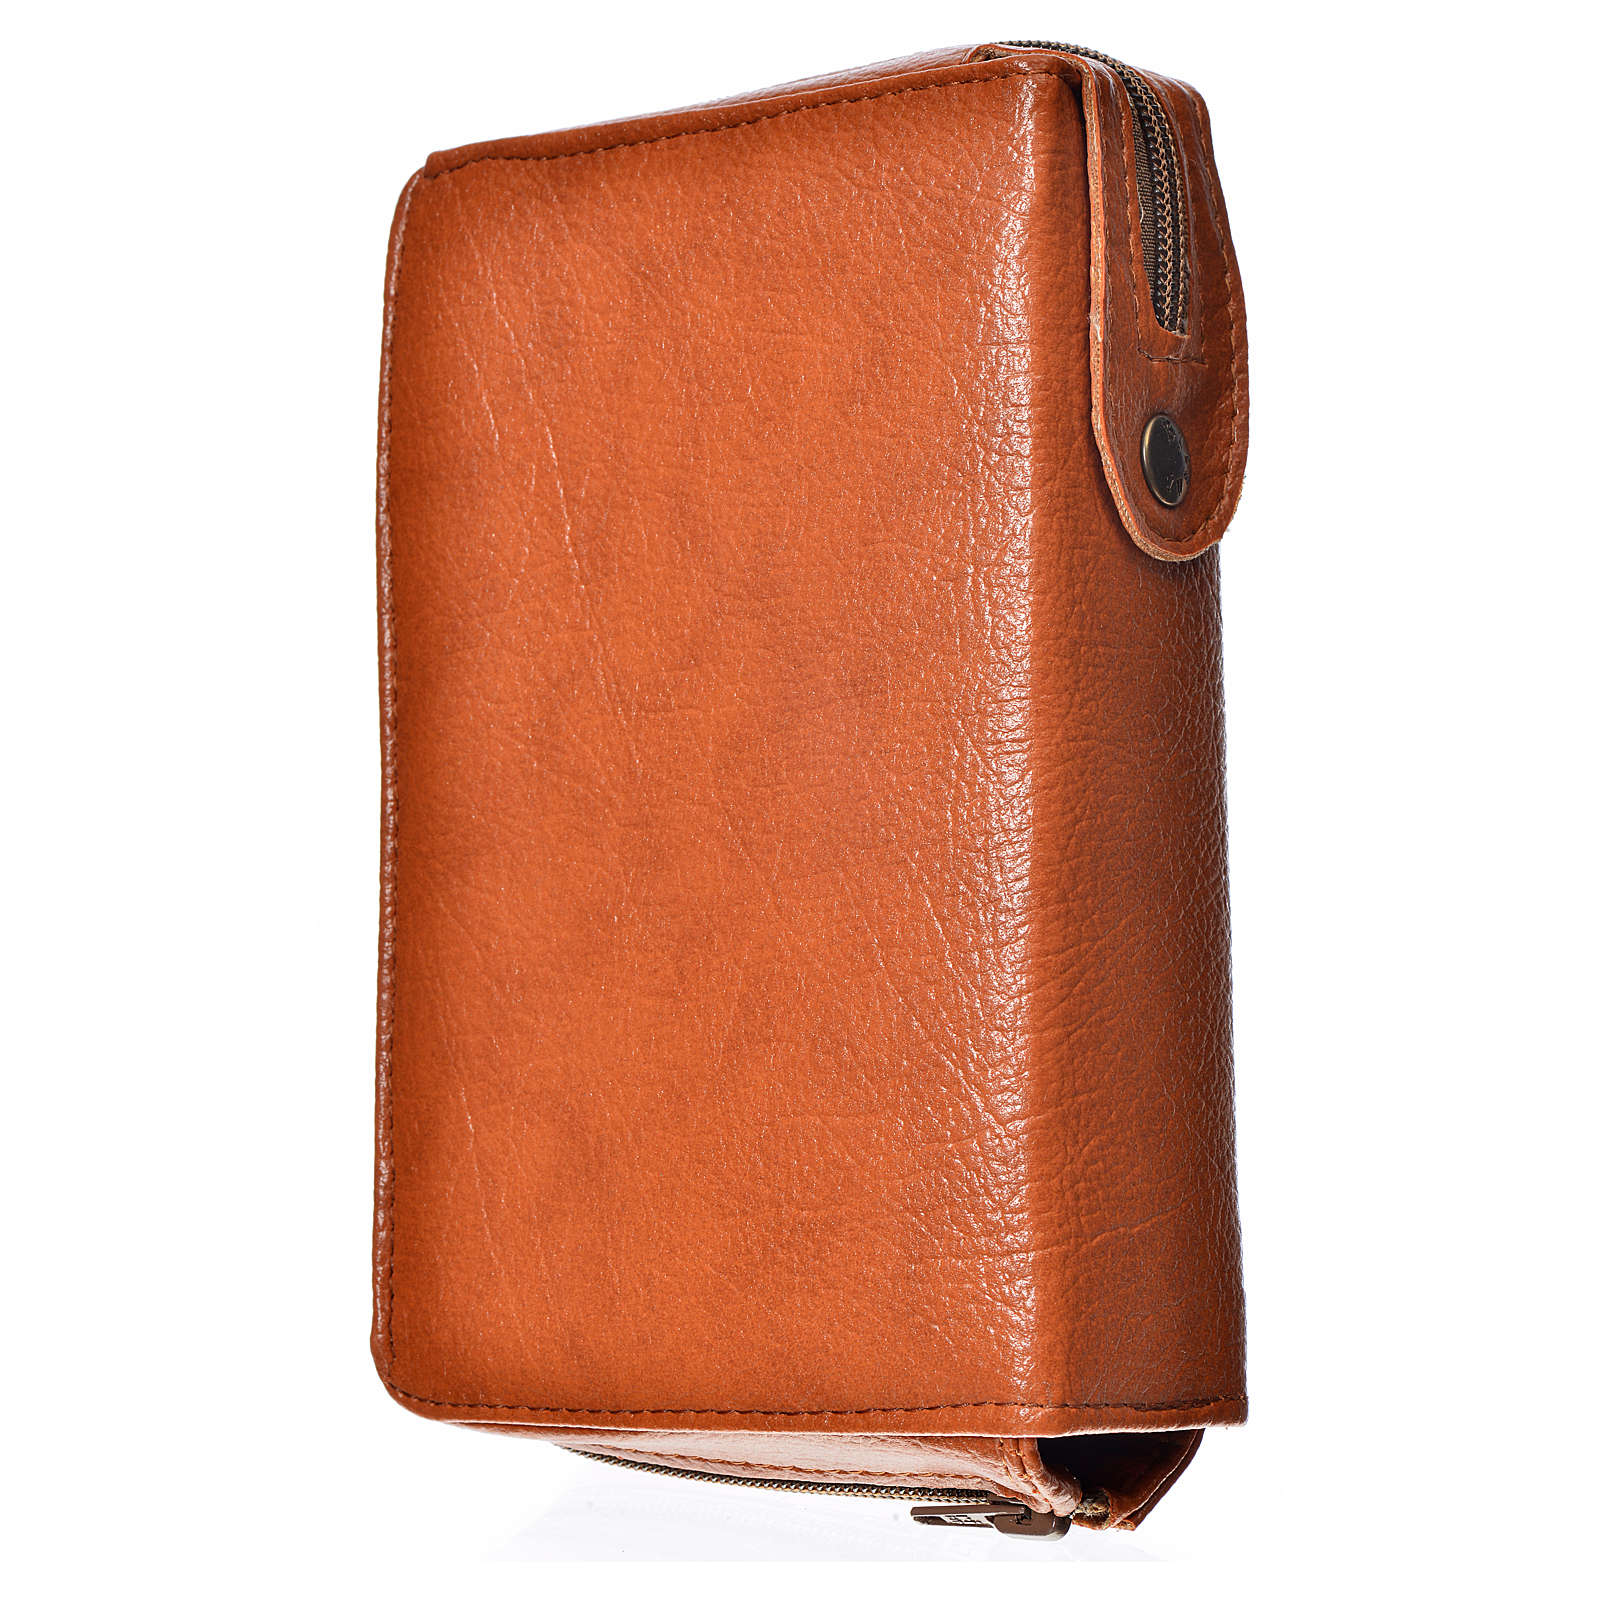 Divine office cover, brown bonded leather 4